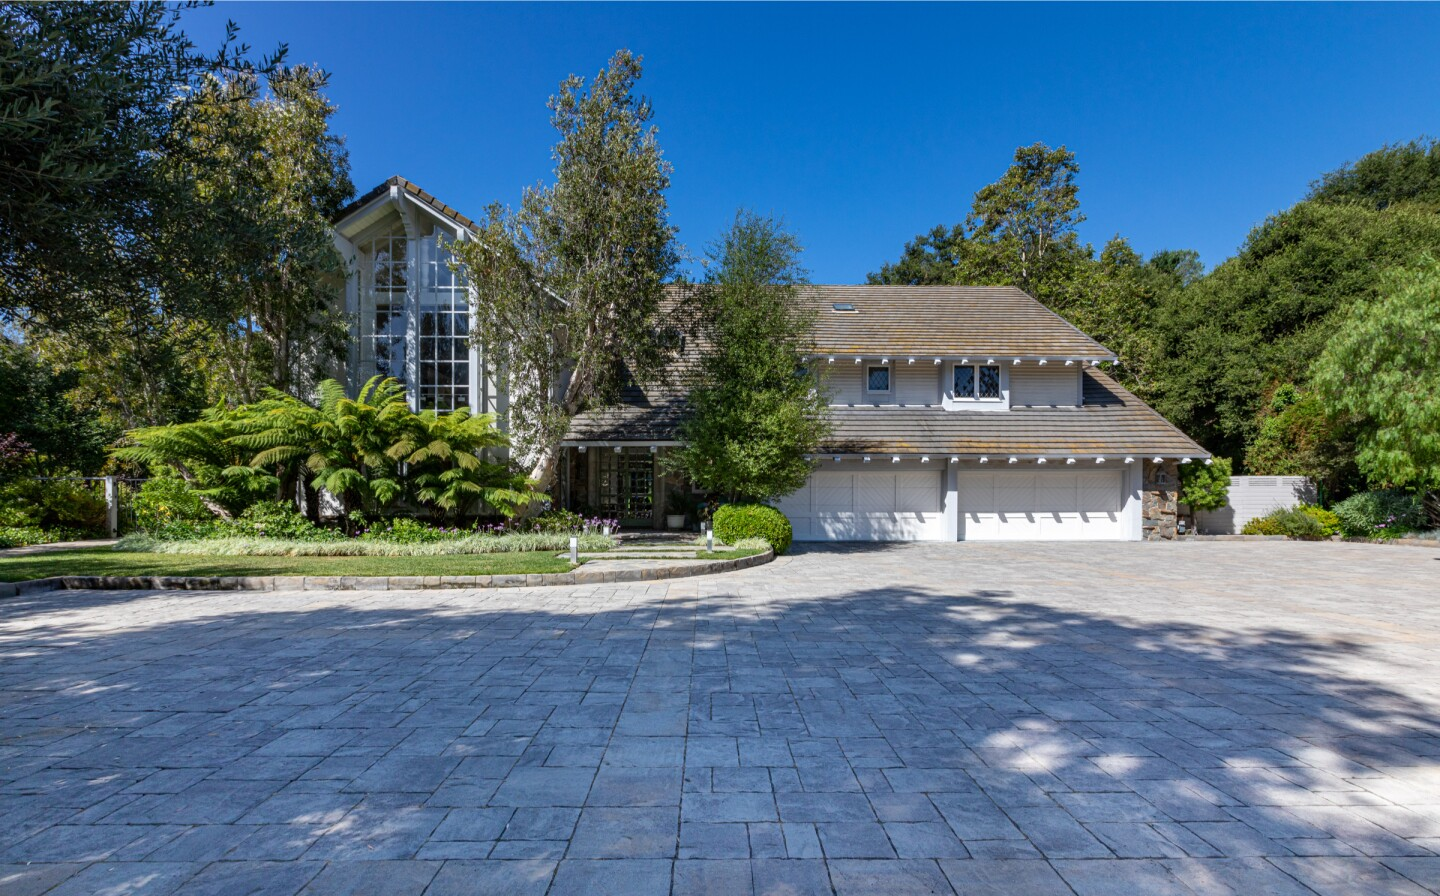 The 1.3-acre estate includes a five-bedroom home, tennis court, swimming pool and spa.